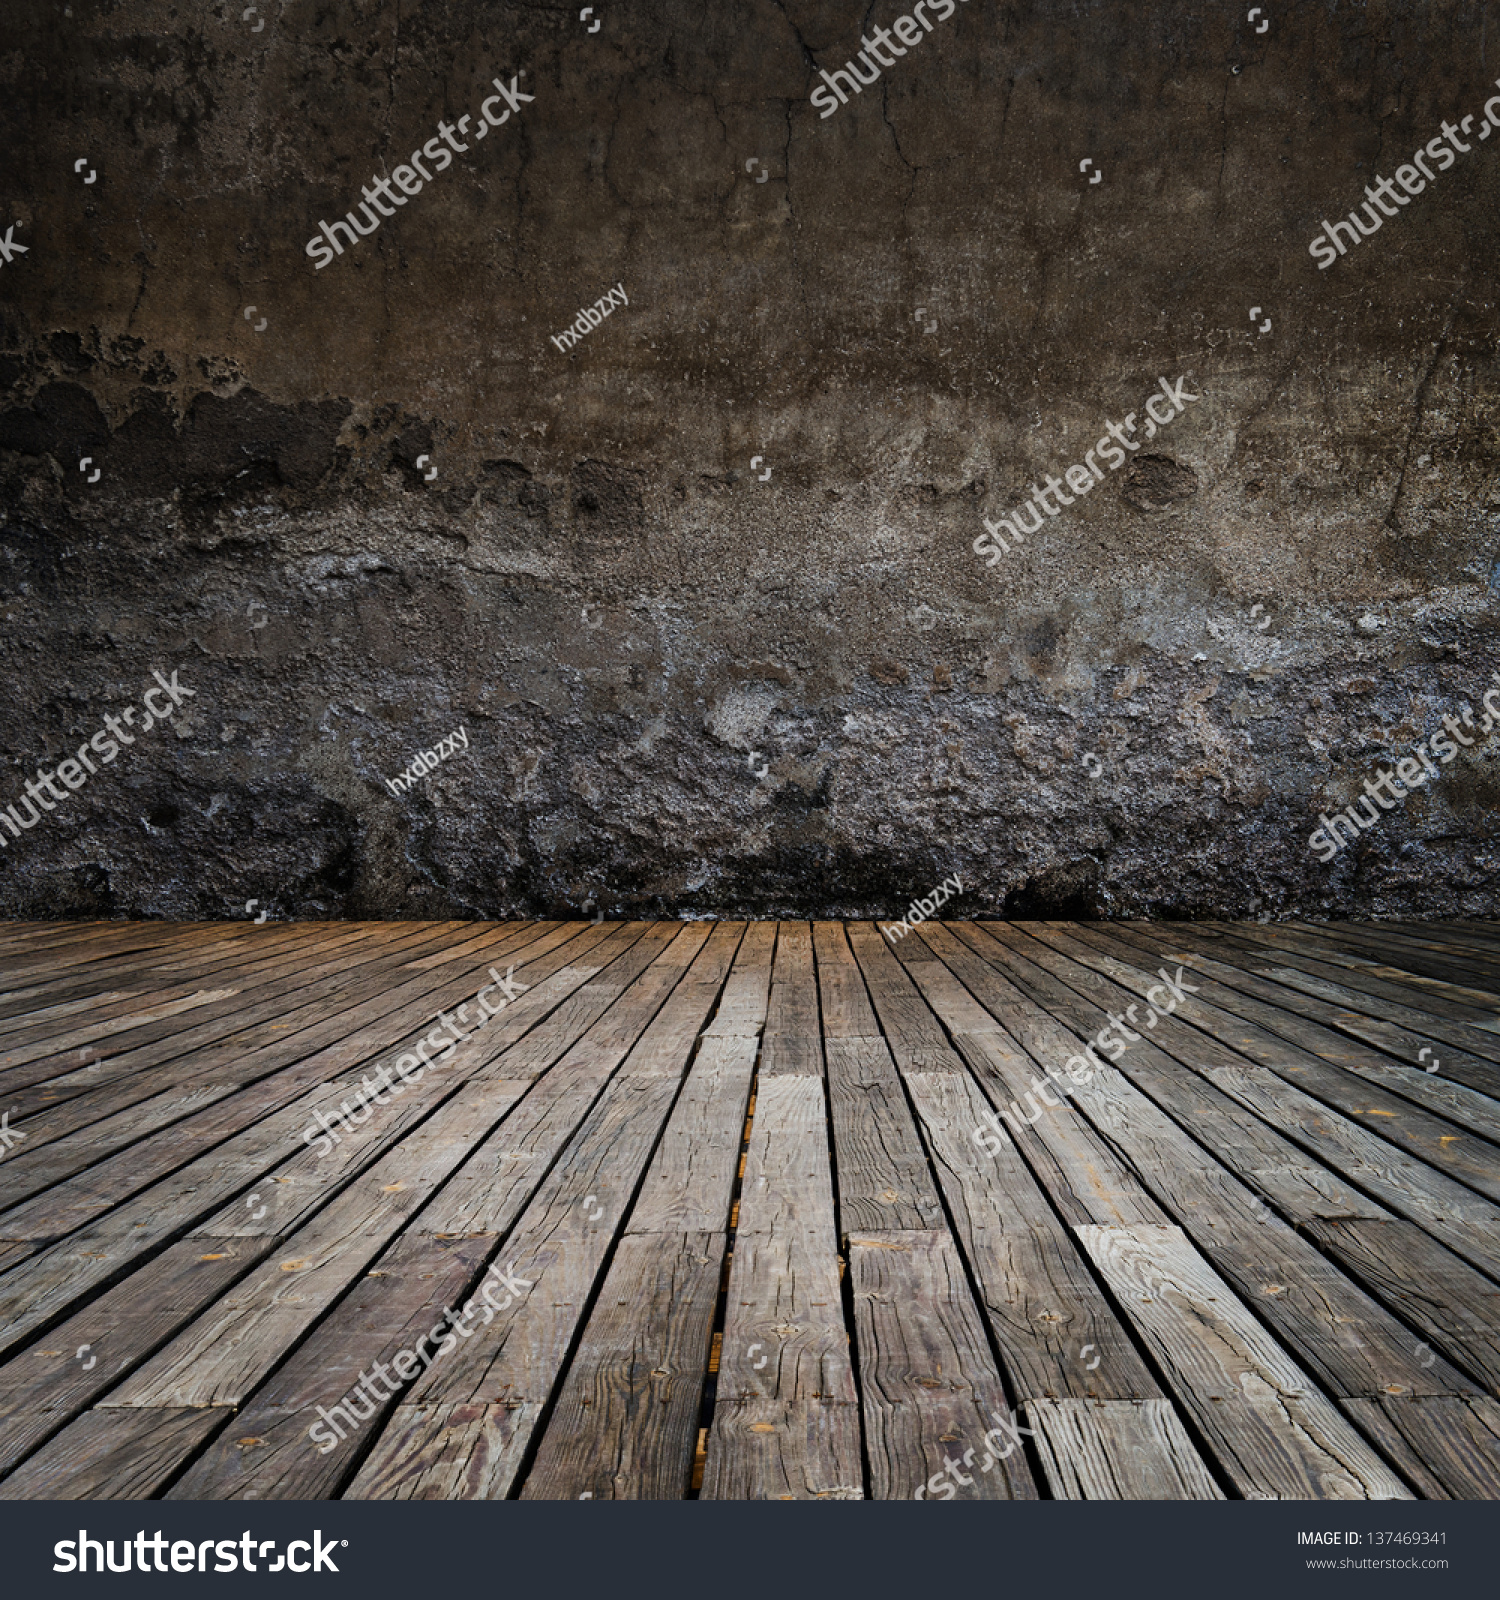 abstract the old wood floor and concrete wall for background. - Abstract Old Wood Floor Concrete Wall Stock Photo 137469341